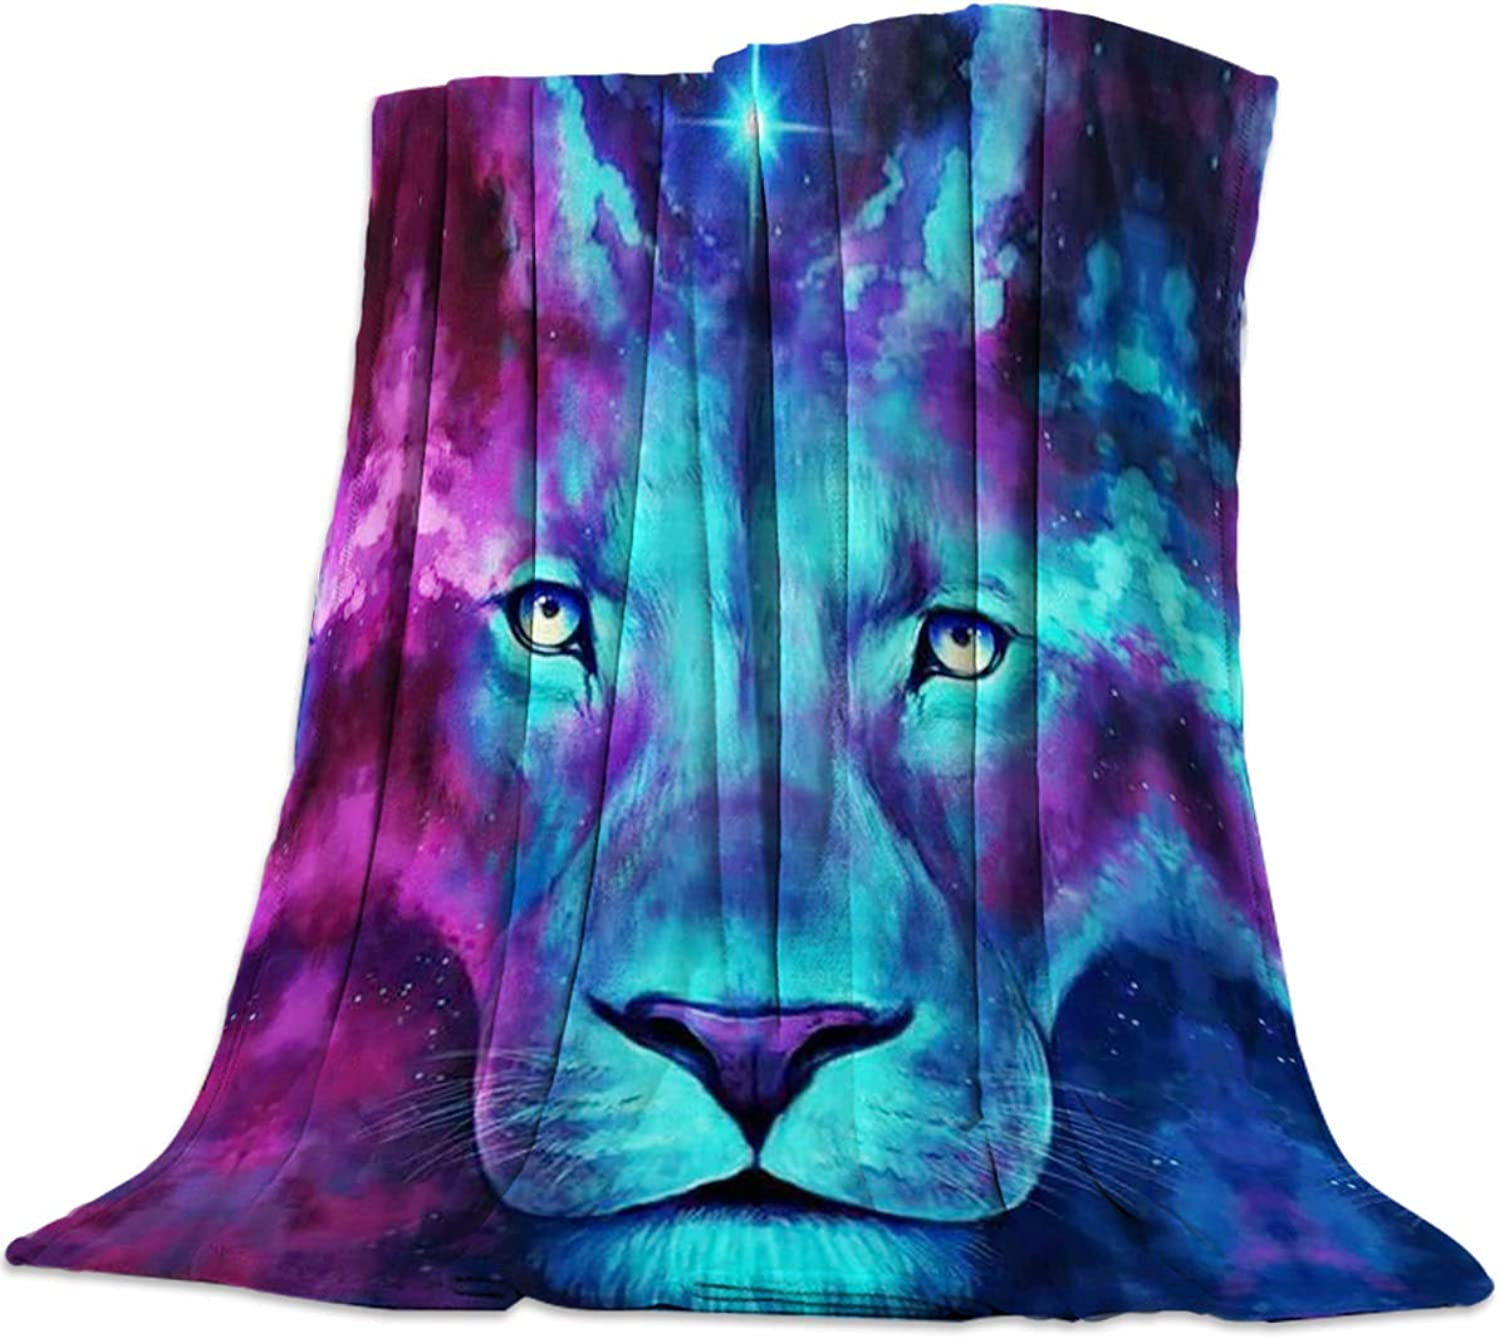 YEHO Art Gallery 49x59 Inch Flannel Fleece Bed Blanket Soft ThrowBlankets for Girls Boys,colorful 3D Galaxy Lion Head Animal Pattern,Cozy Lightweight Blankets for Bedroom Living Room Sofa Couch